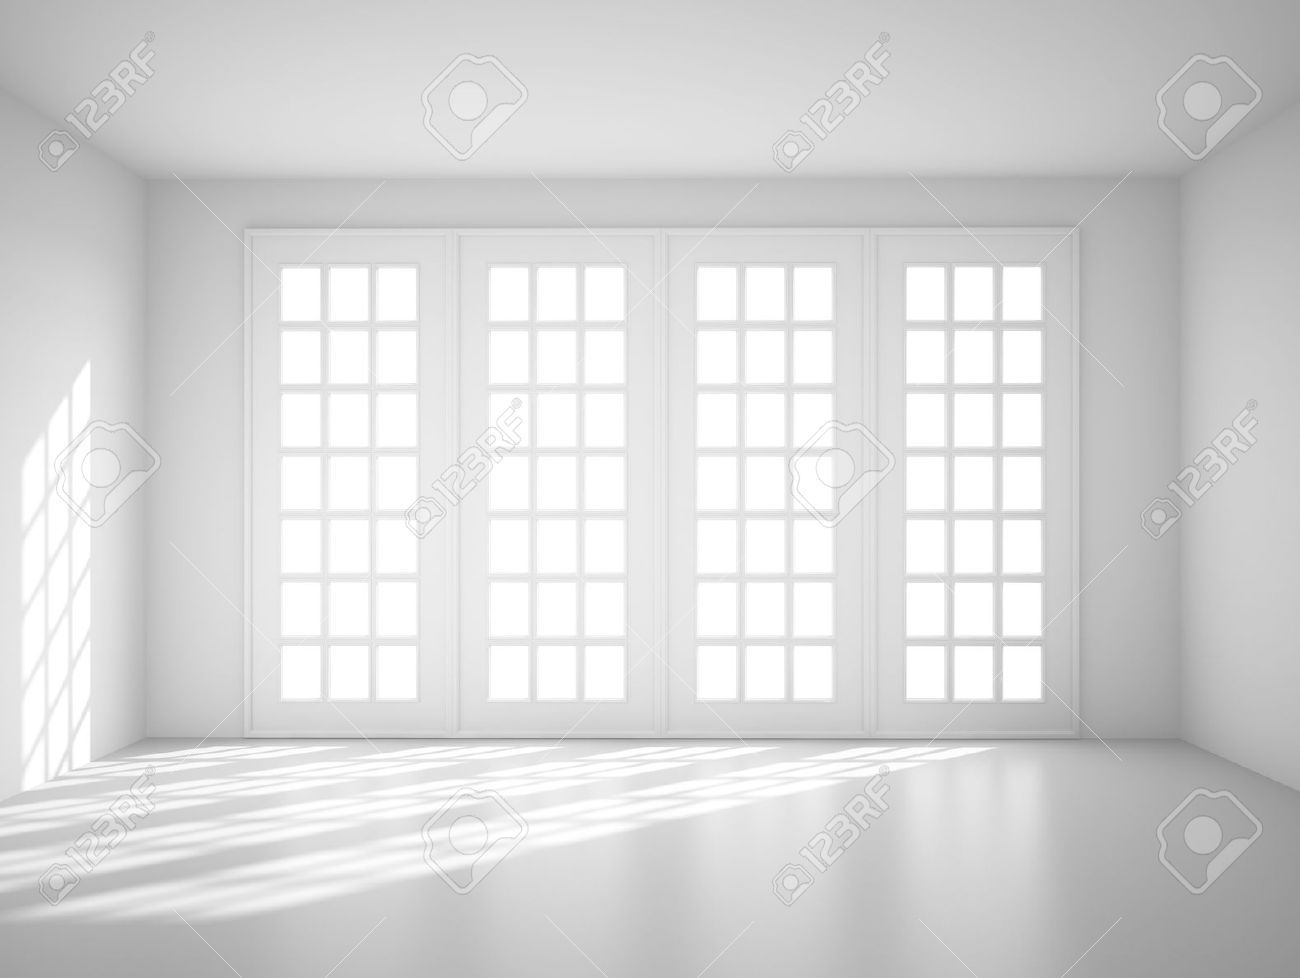 Decoration 12 modesty photos white room images fp white for White window interior design